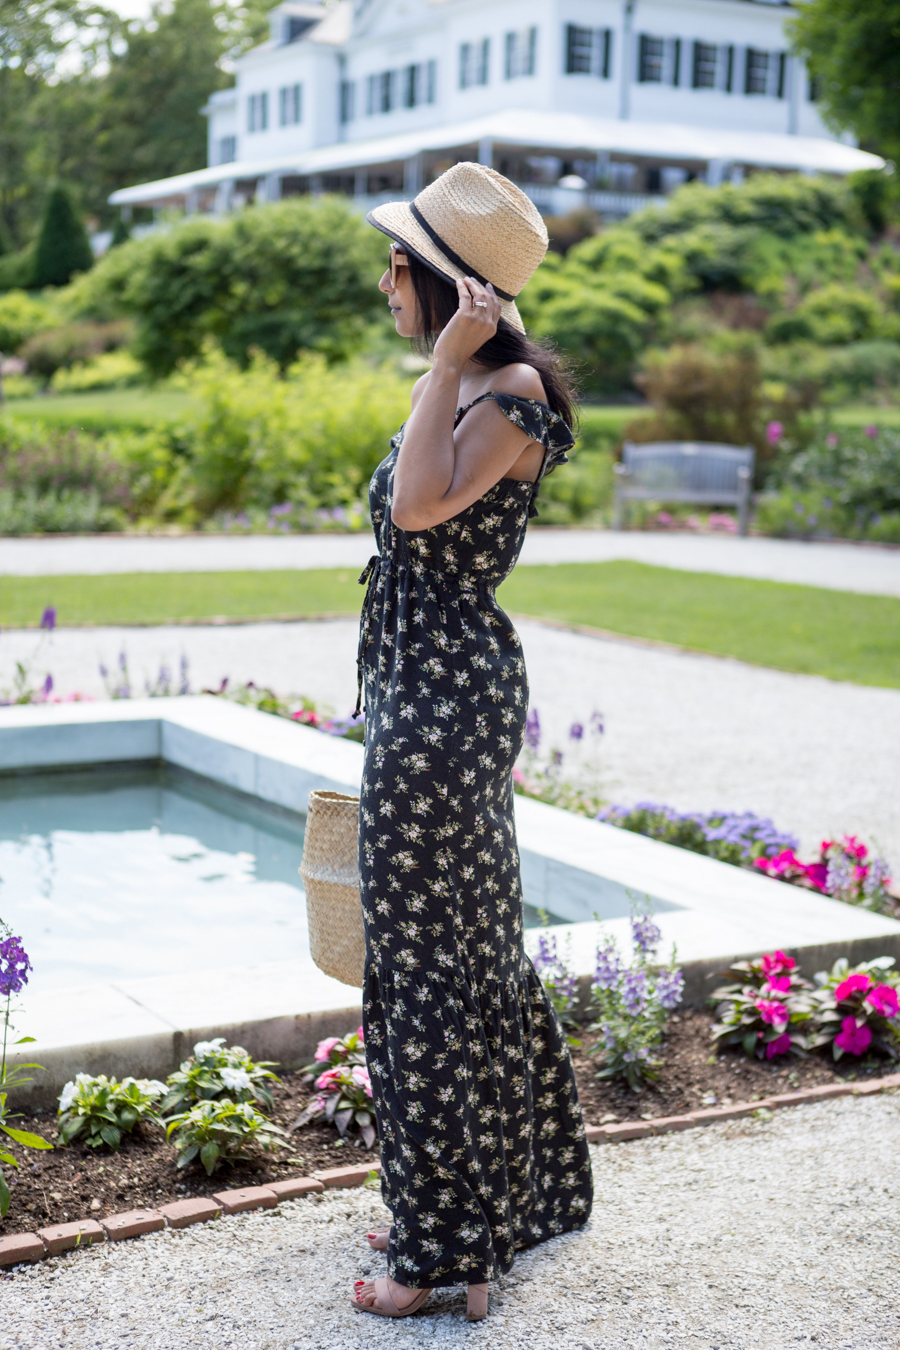 floral, floral dress, summer style, travel, new england, berkshires, travel guide, what to do in the berkshires, feminine style, affordable style, petite fashion, american eagle outfitters, asos, vacation style